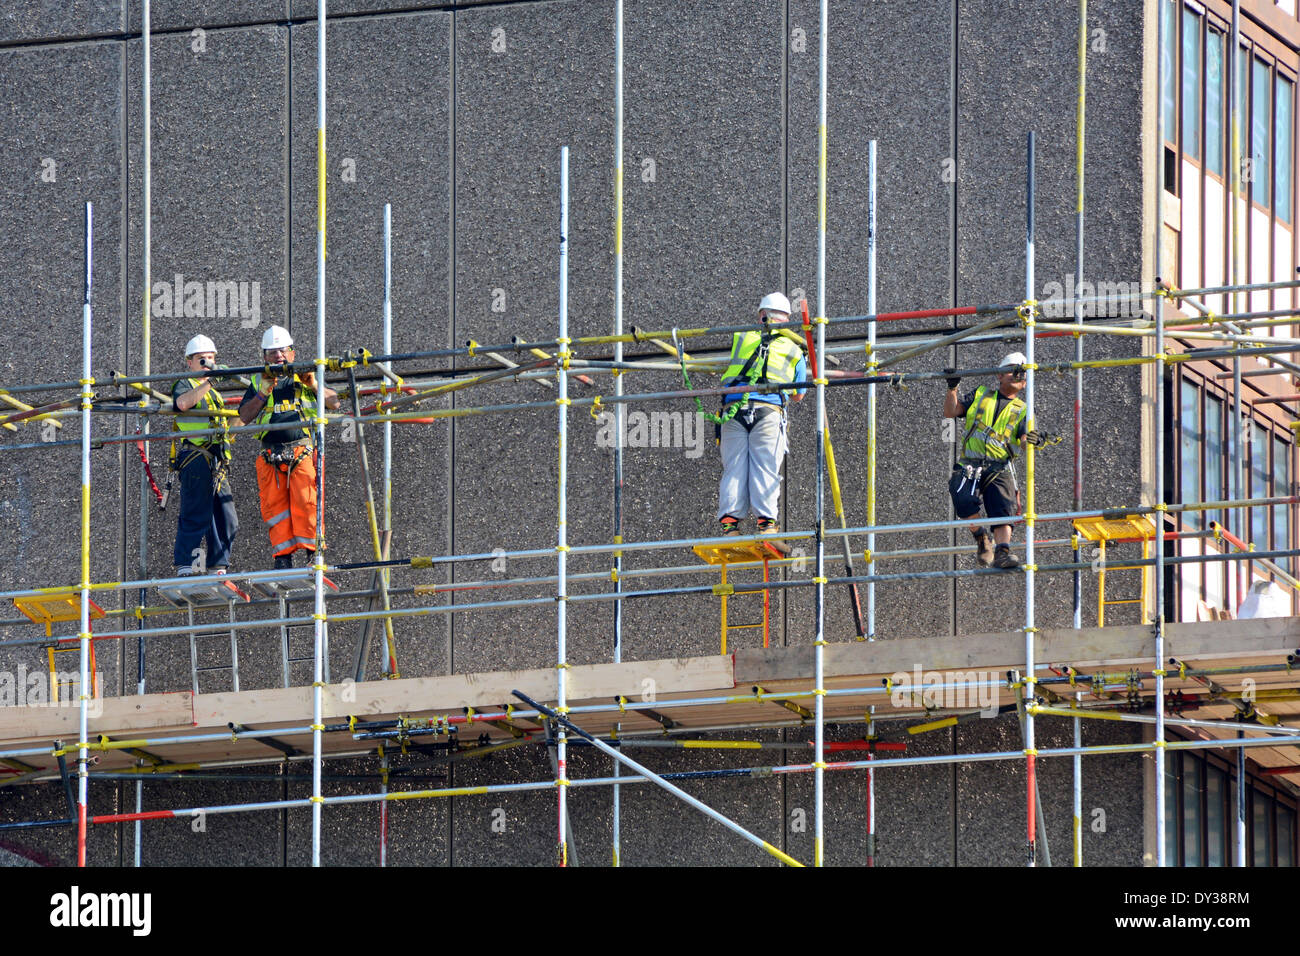 Workmen erecting scaffolding around obsolete social housing block prior to demolition for re development Heygate Estate Southwark South London England - Stock Image